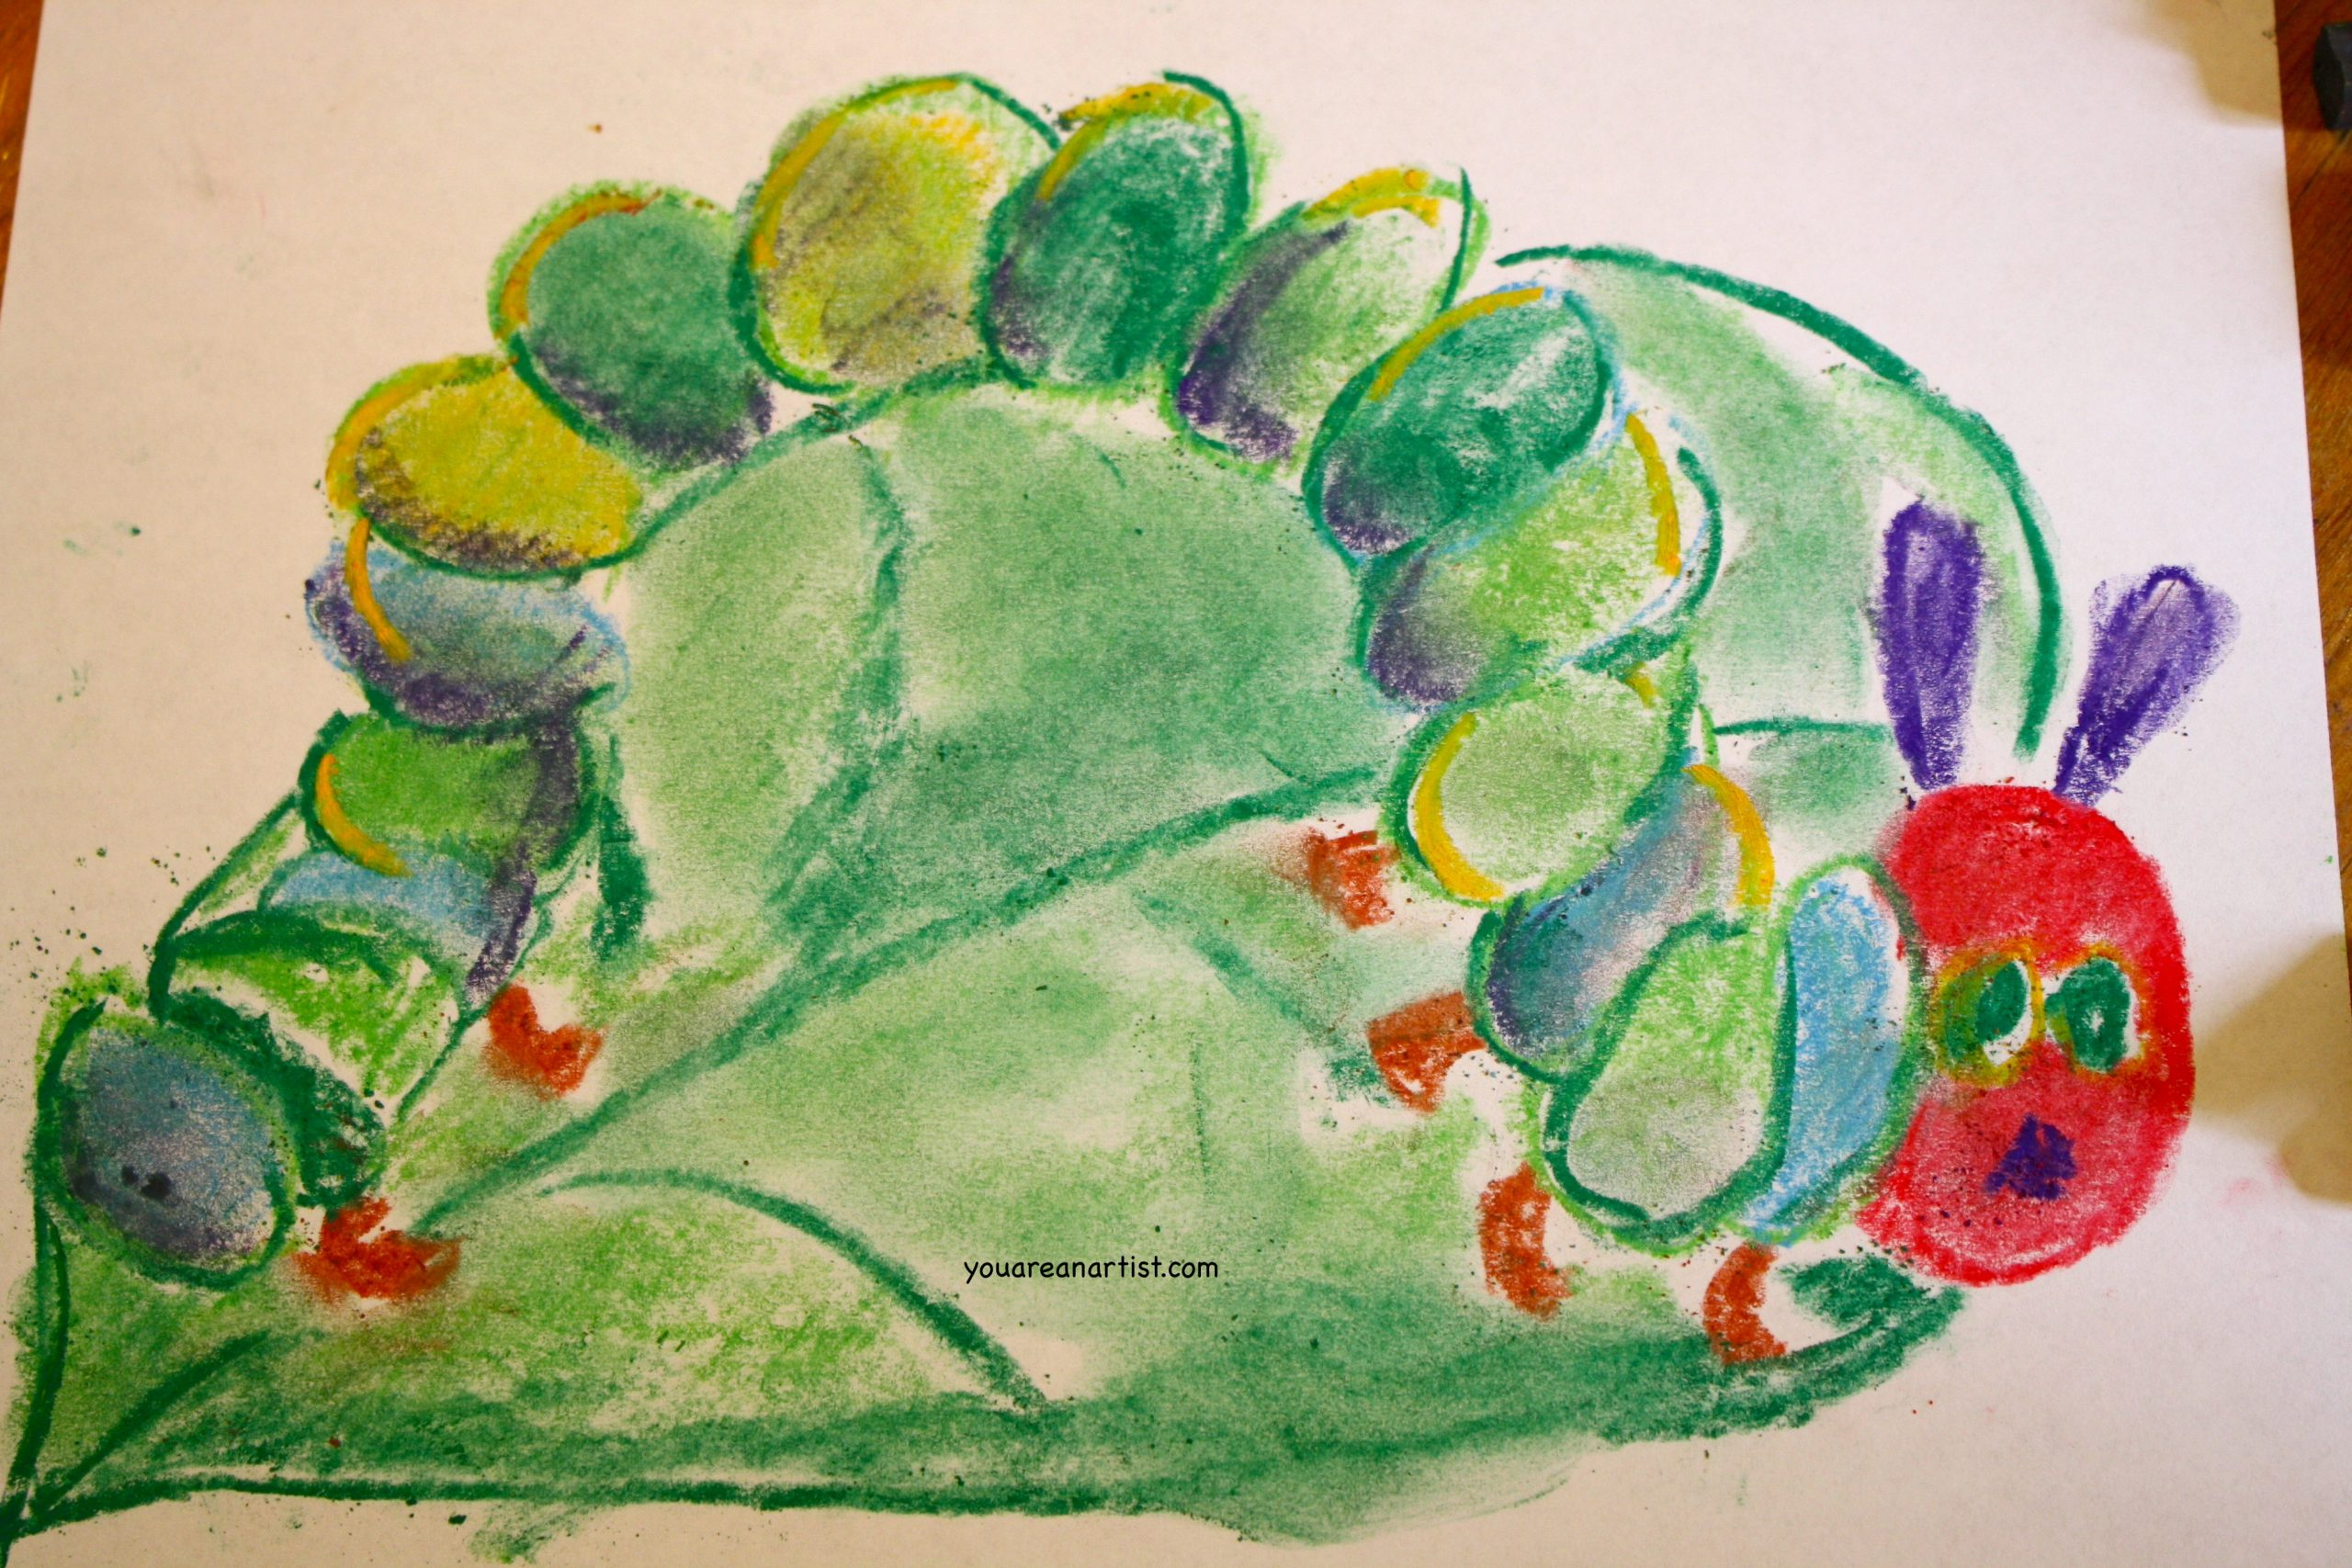 In this art lesson, Nana's granddaughter teaches her how to draw a caterpillar with chalk pastels in the style of Eric Carle's Very Hungry Caterpillar.